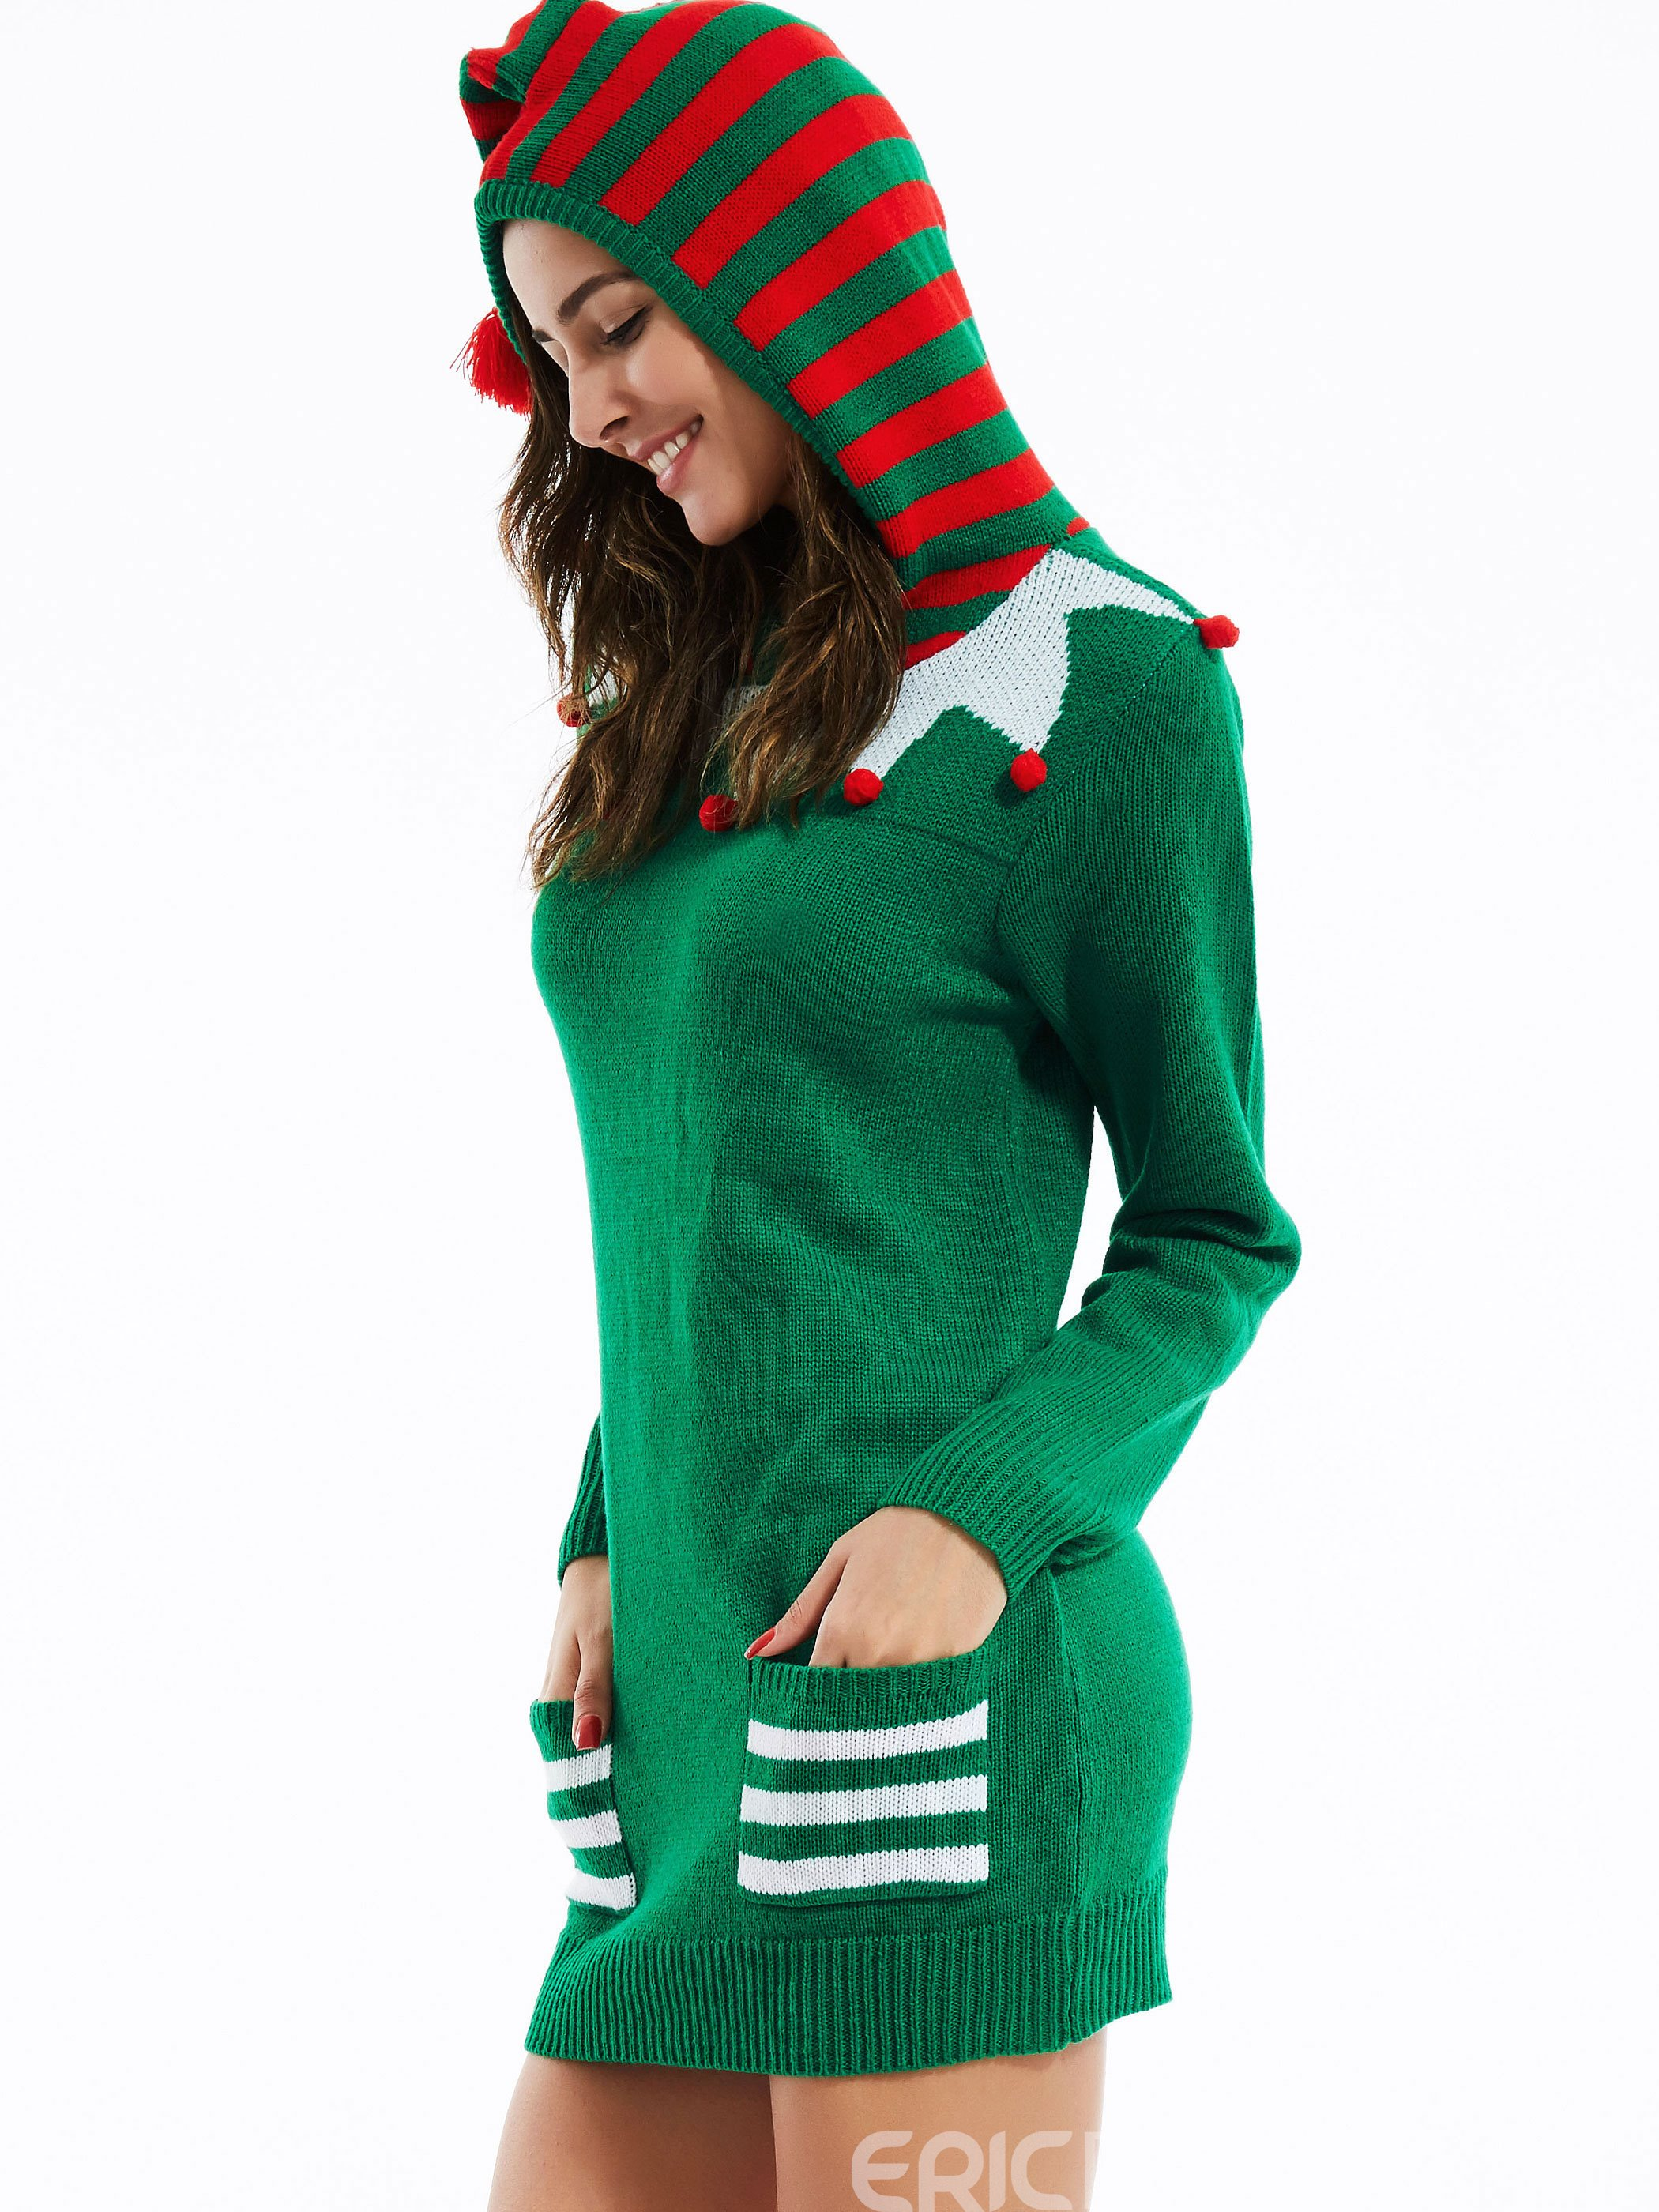 Ericdress Green Christmas Hooded Knitwear